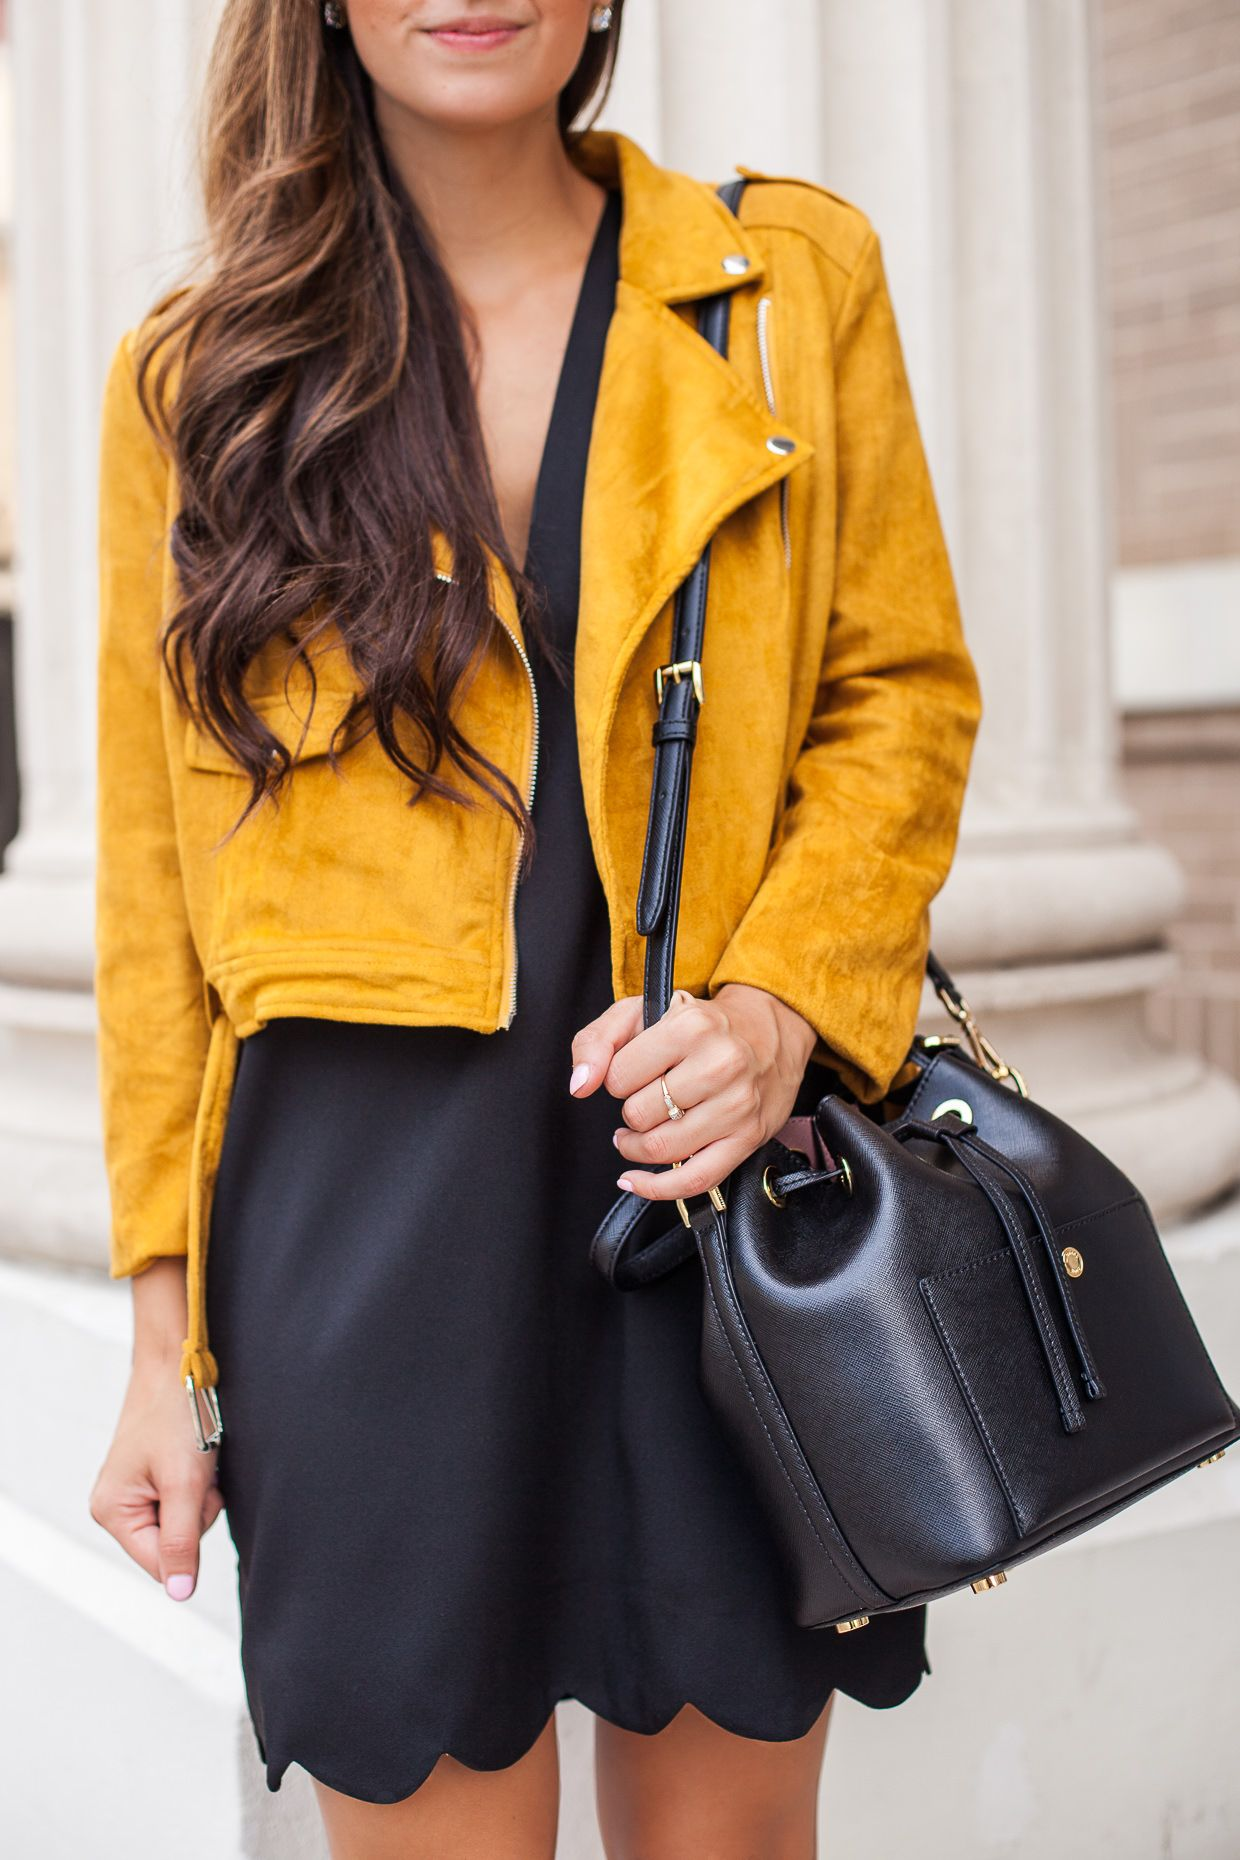 686b7f72a4 Missguided | Michael Kors Bag outfits | Fashion, Mustard suede ...